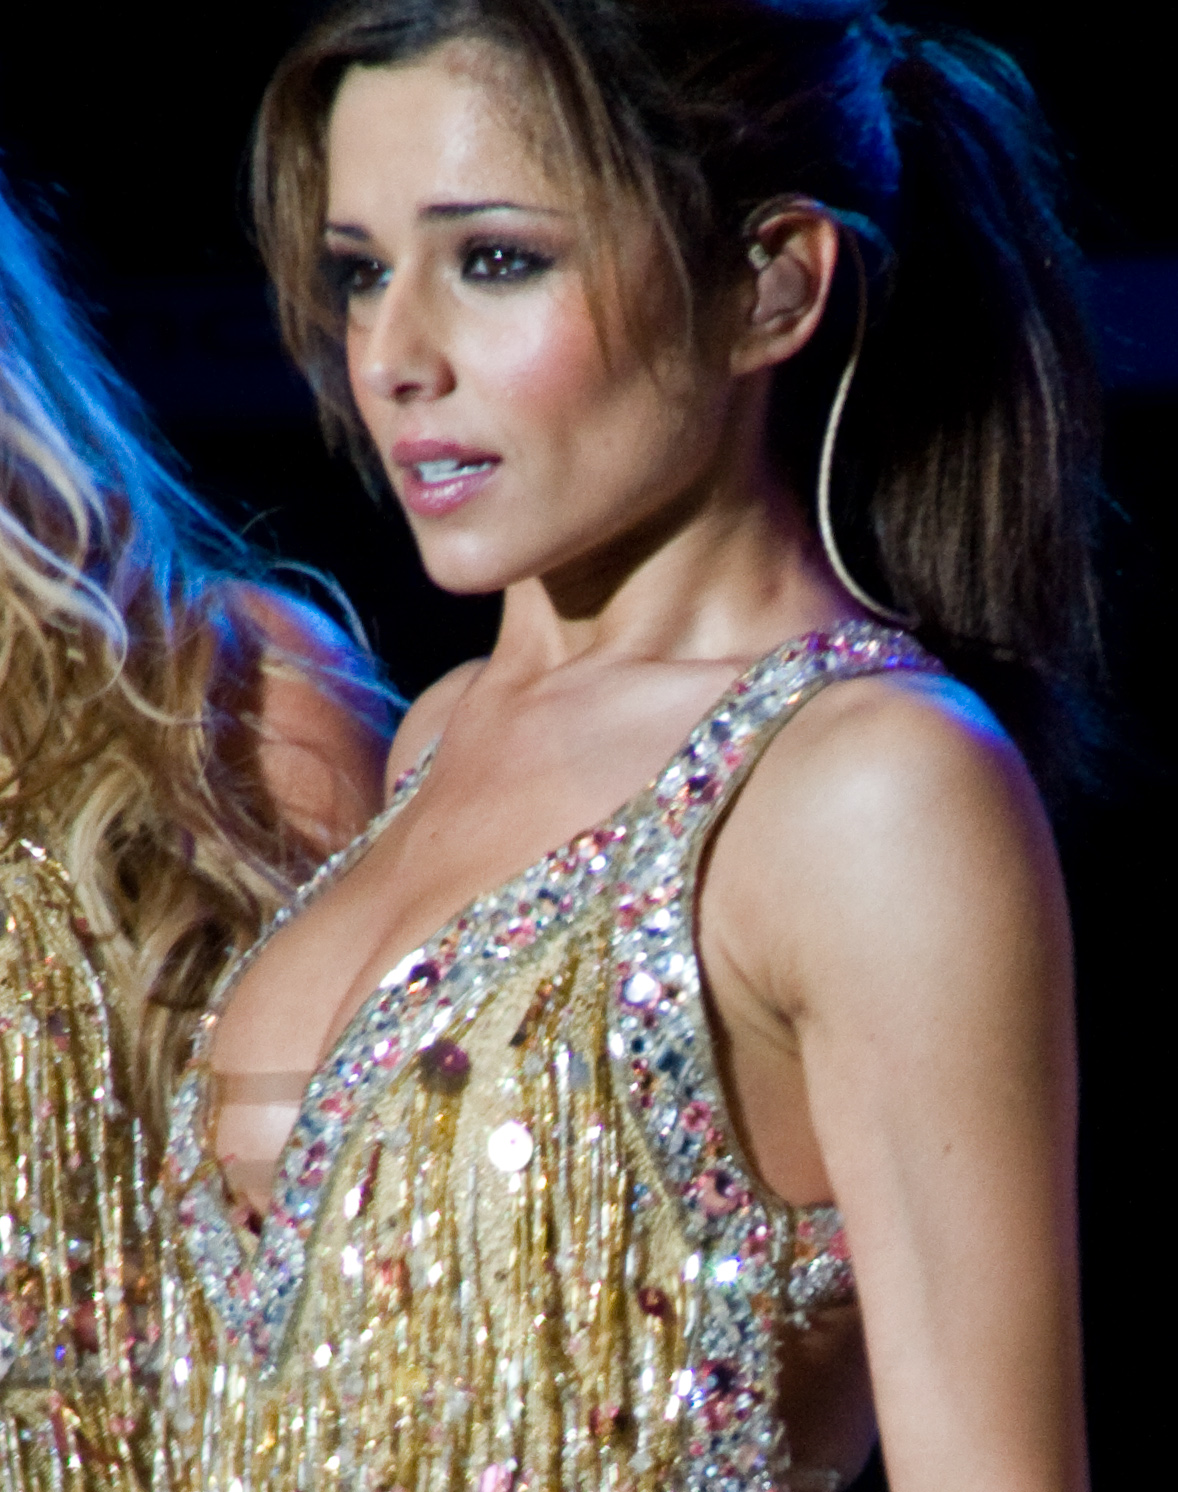 cheryl cole ft tinie tempah crazy stupid love mp3 download